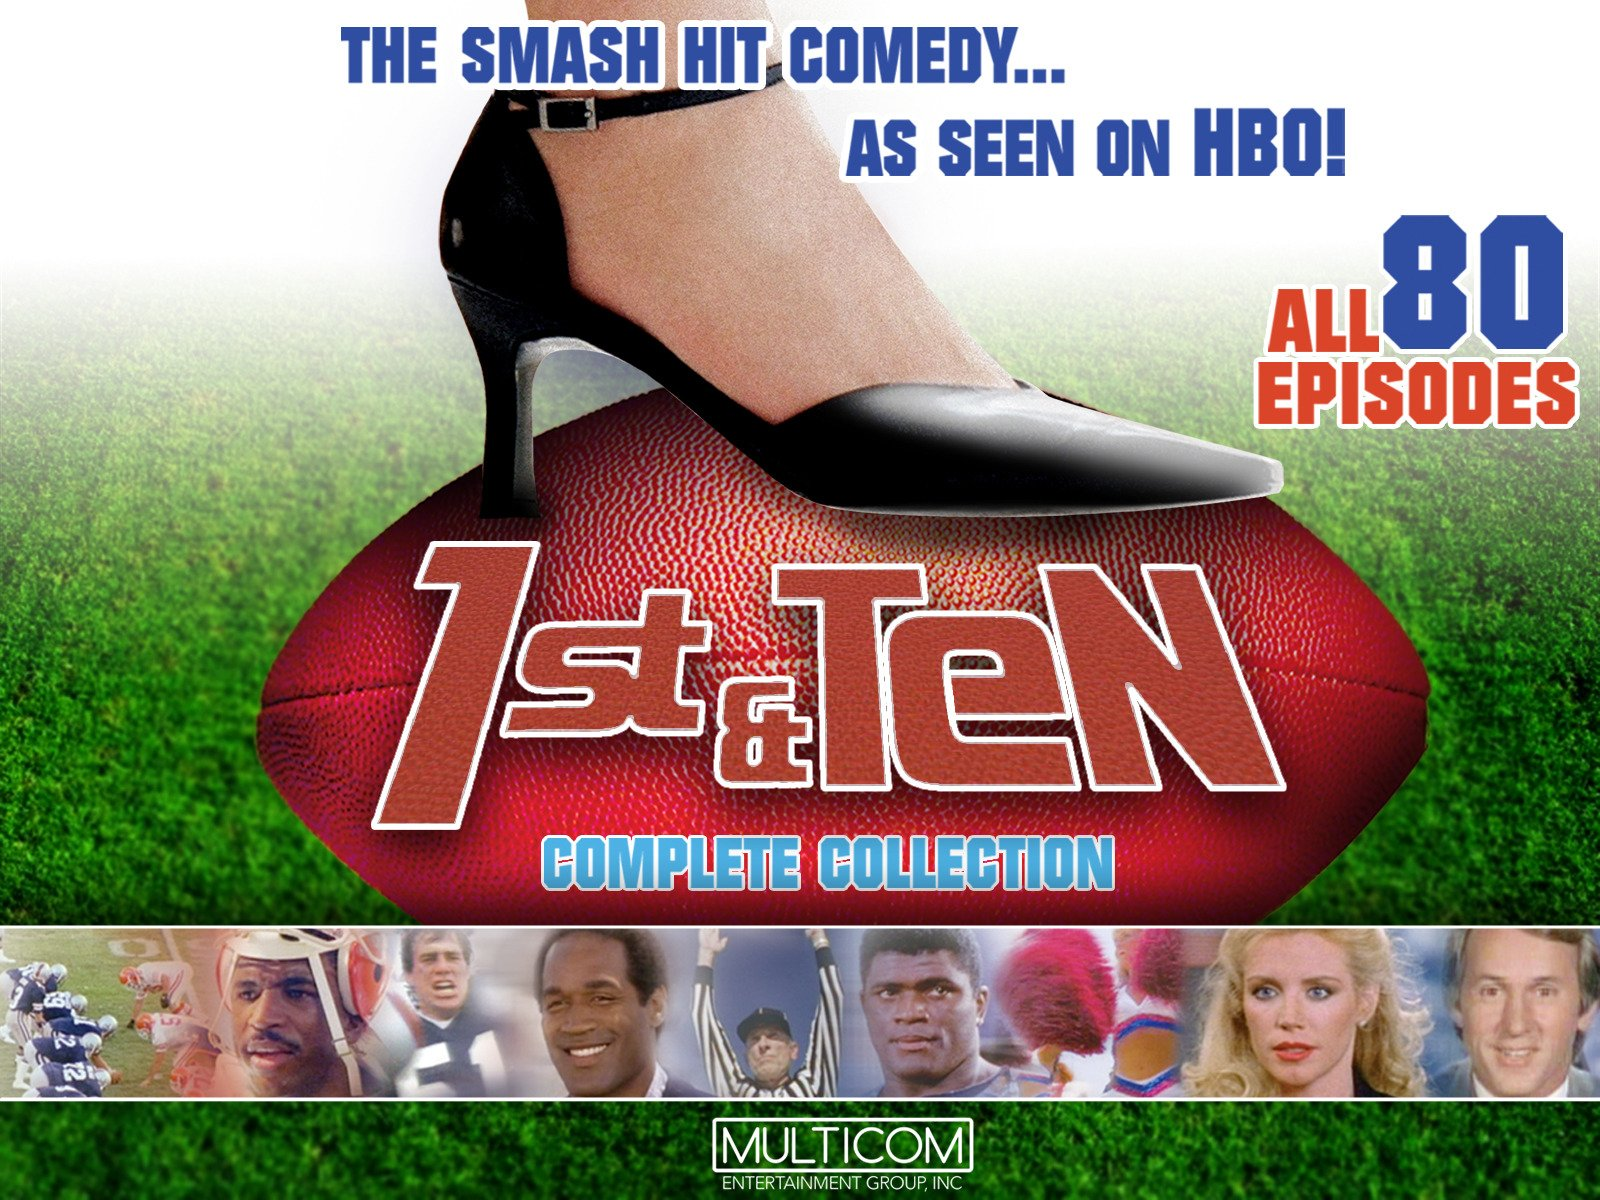 1st & Ten - Season 2